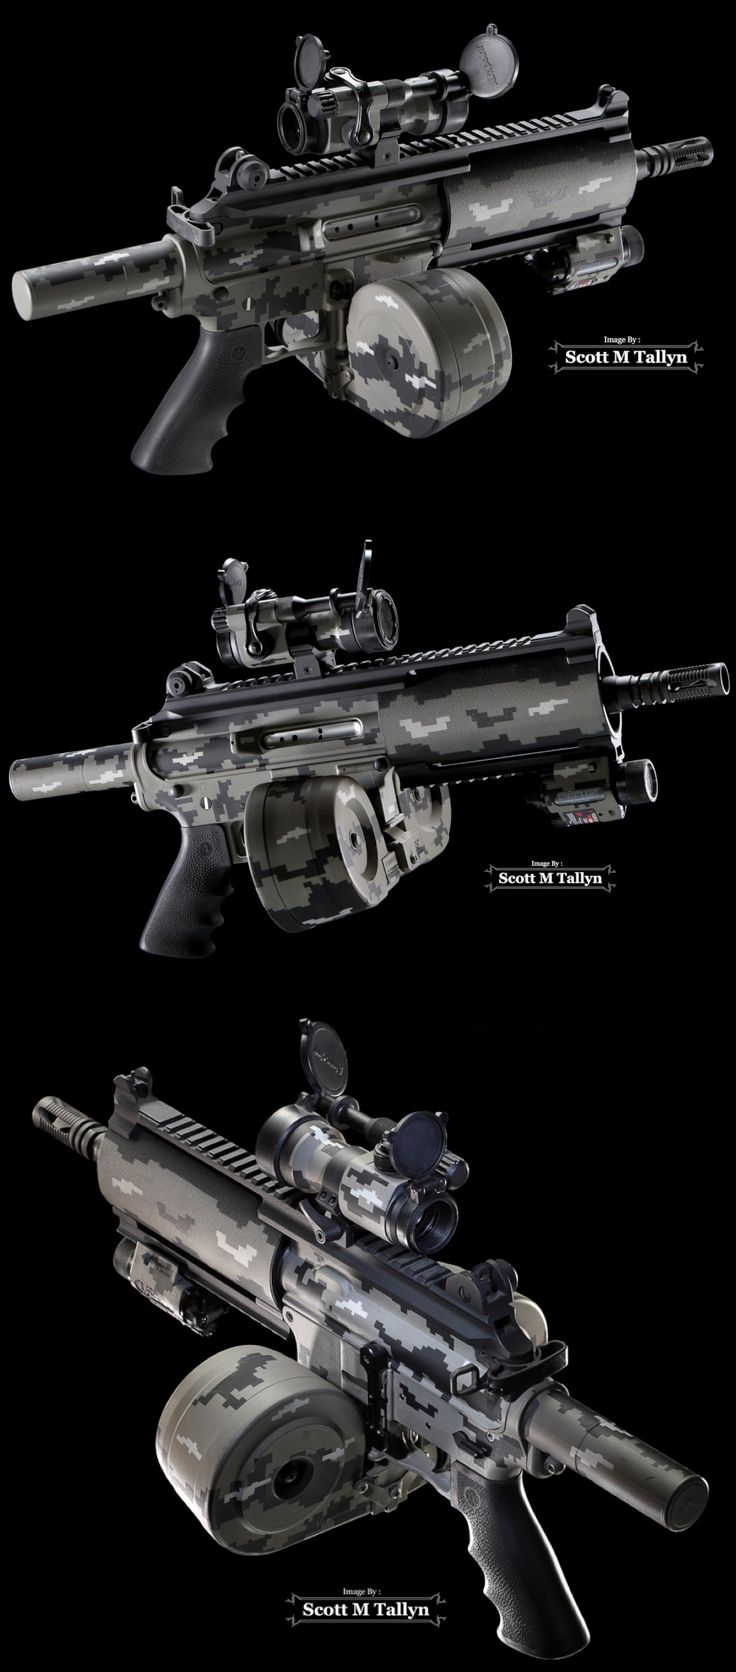 Bushmaster Carbon-15 Pistol  Type: Custom Bushmaster Carbon-15 Pistol (.223) Accessories: Custom Urban Duracoat Paint, Aimpoint 7000 Red Dot Scope w/ Spill Kill, Insight M6 Flashlight w/ Laser, 40 Round Magazine, 100 Round Drum Magazine, Tactical Charging Handle, Tactical Bolt Release Catch and Flash Suppressor.